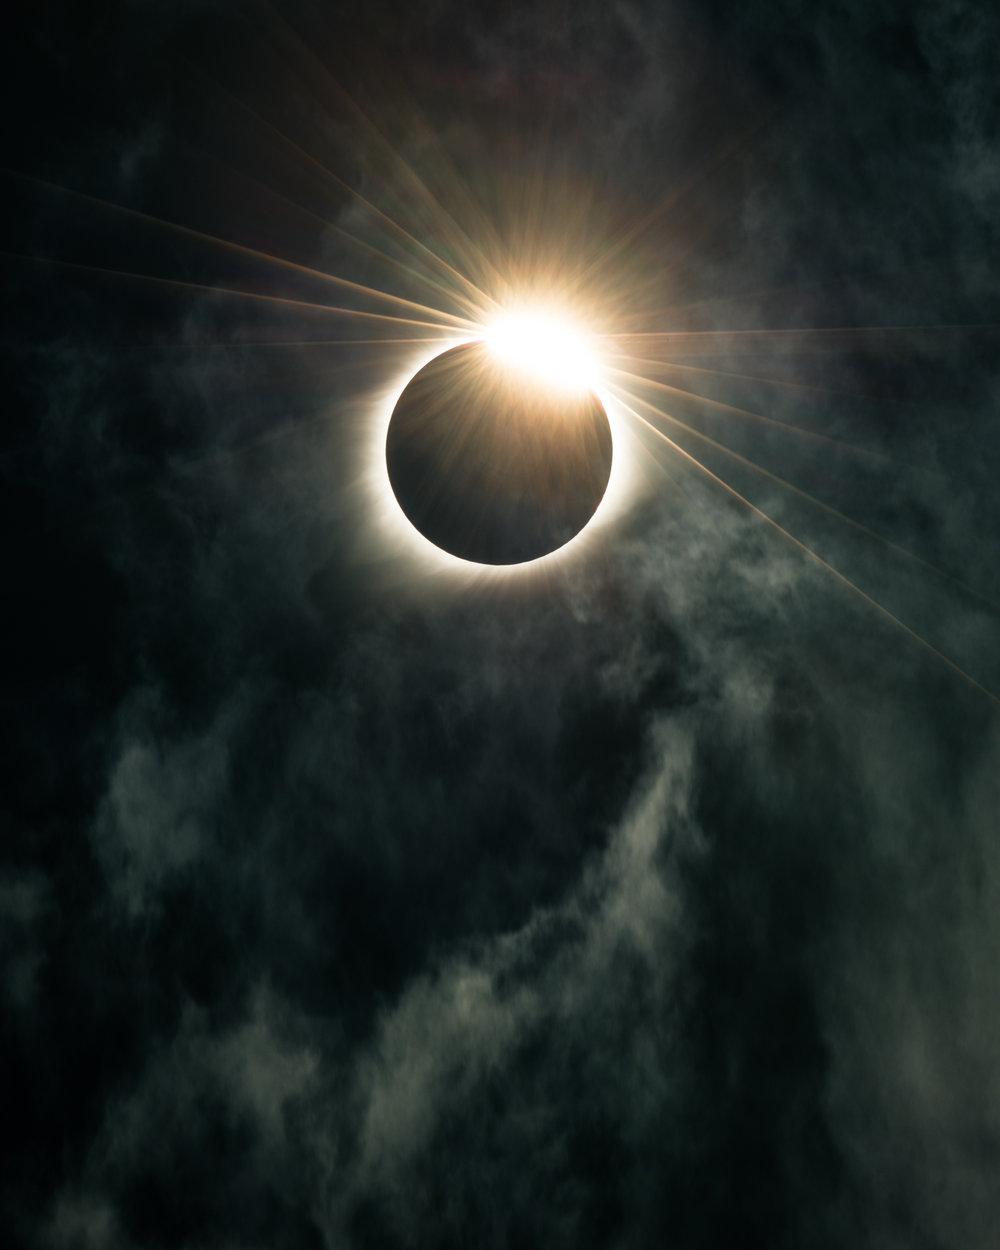 Eclipse_082117._CVB7693-Edit.jpg